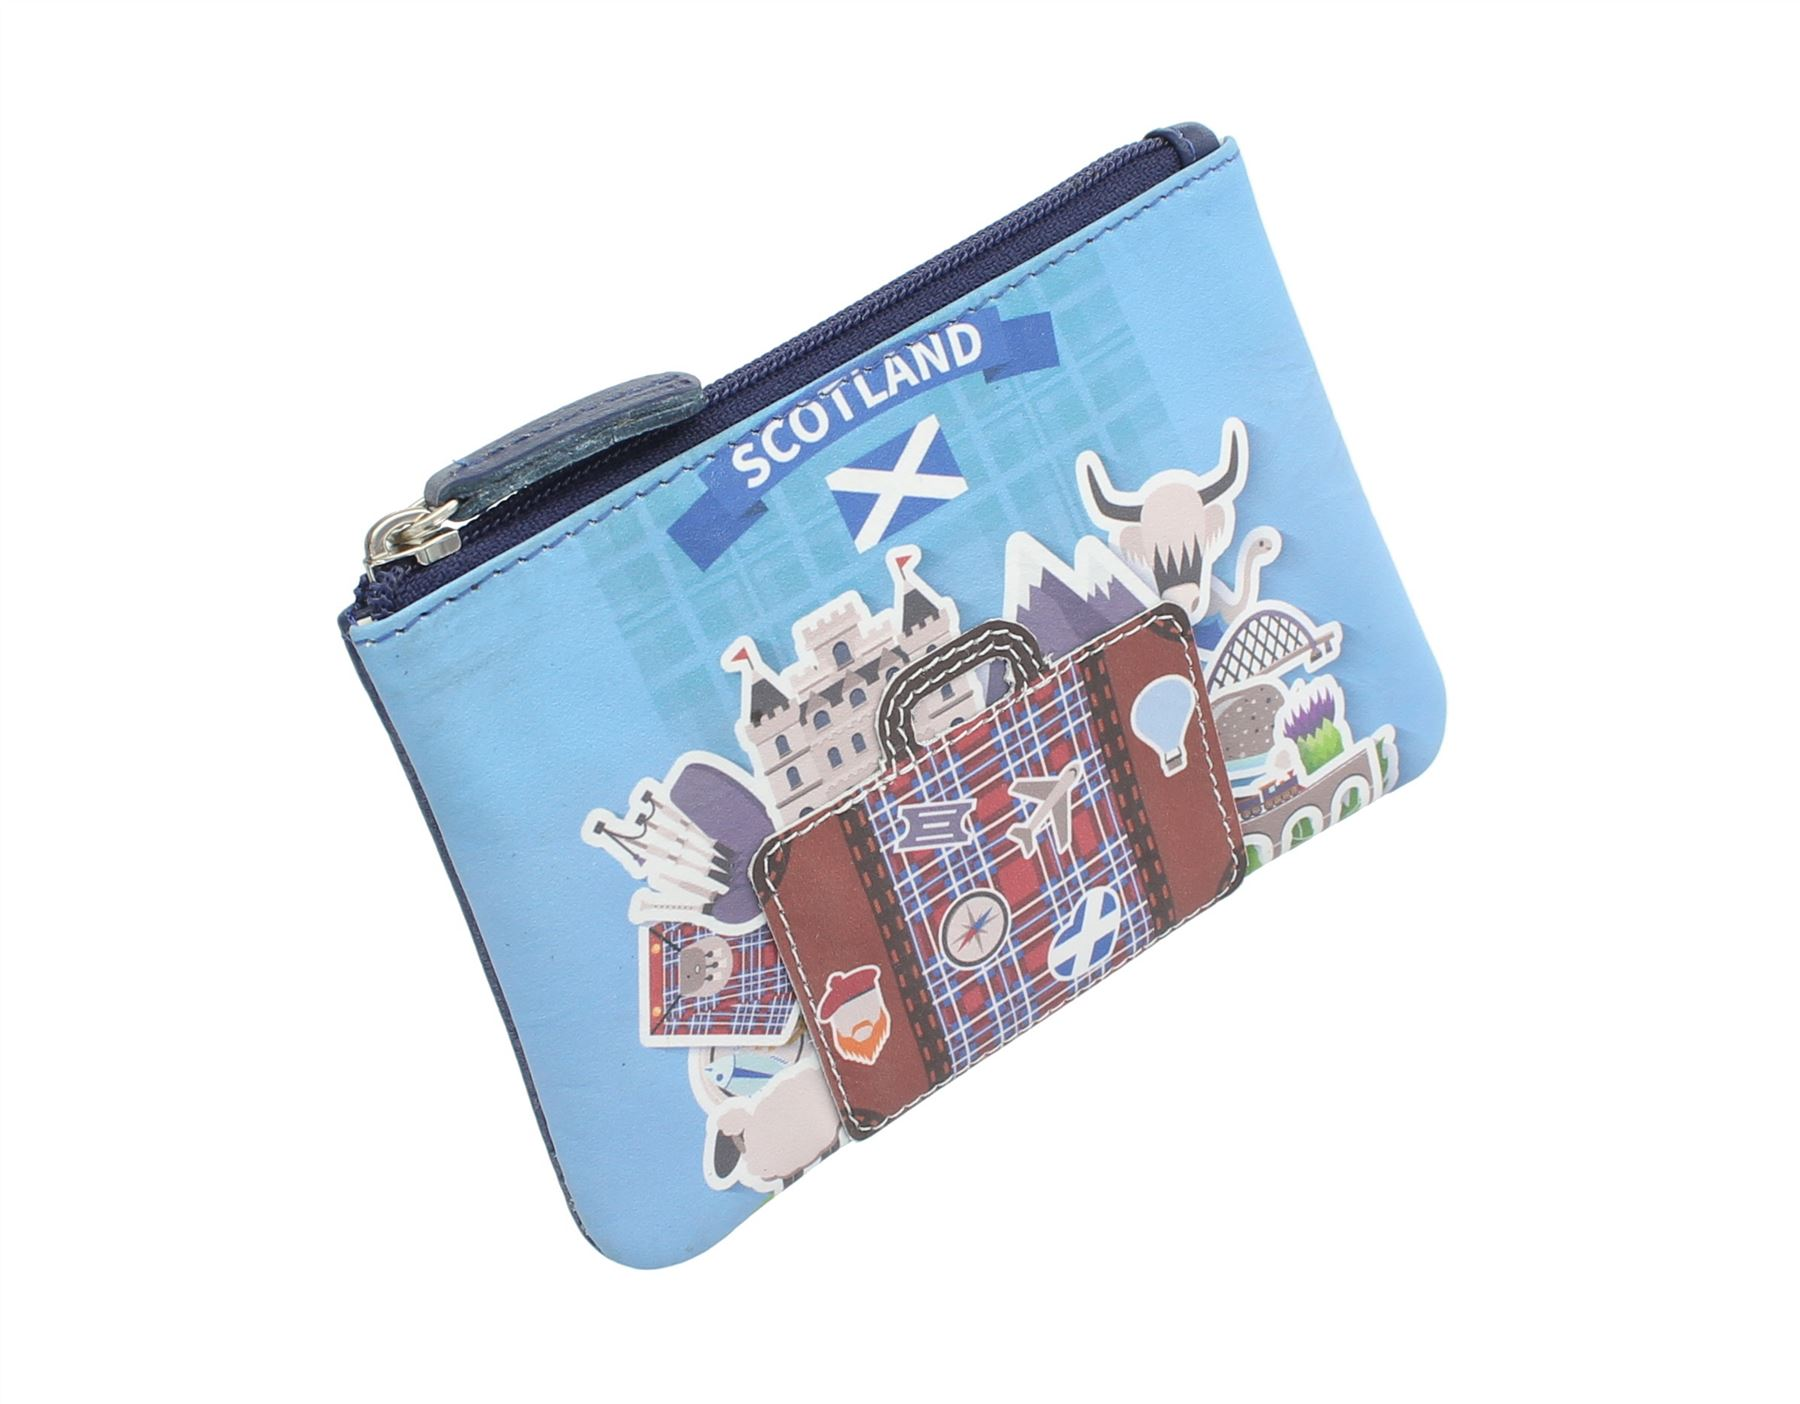 Mala Leather Applique And Printed Leather Coin Purse 4115/_11